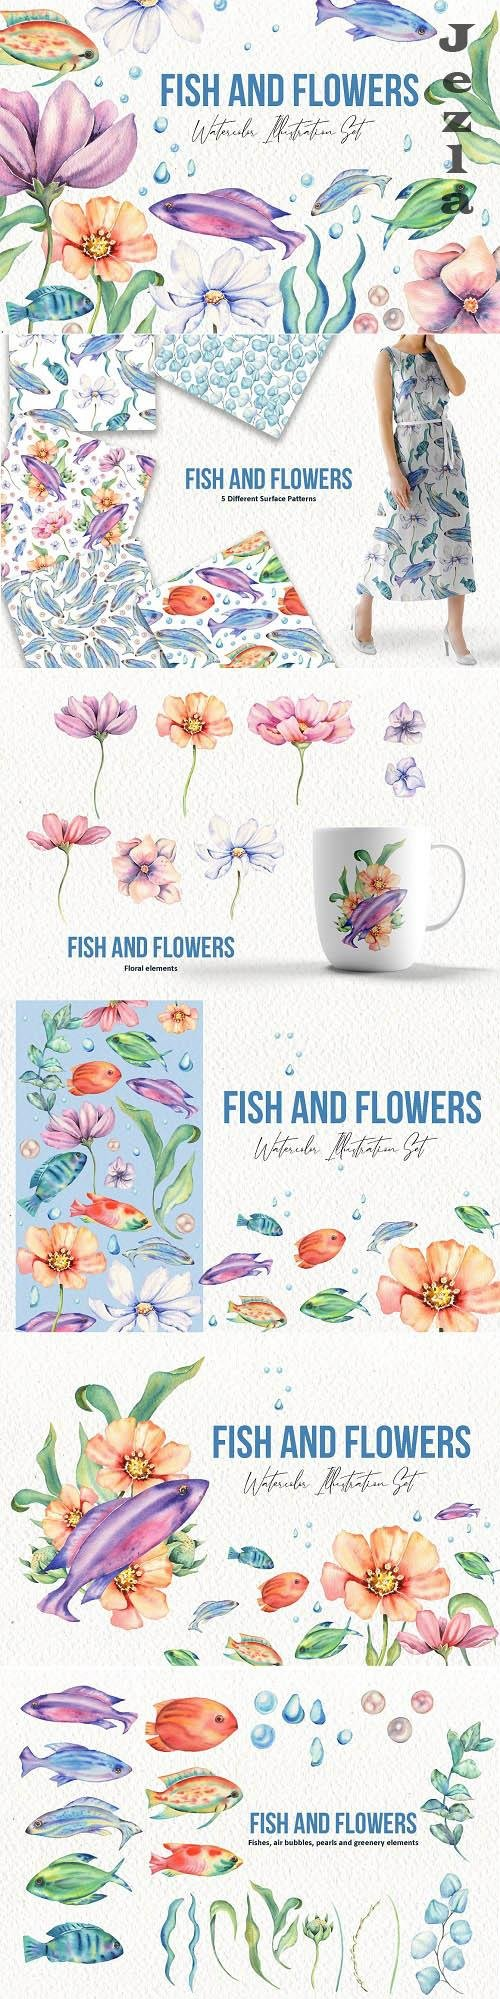 Fishes and Flowers Illustration Set - 6364609